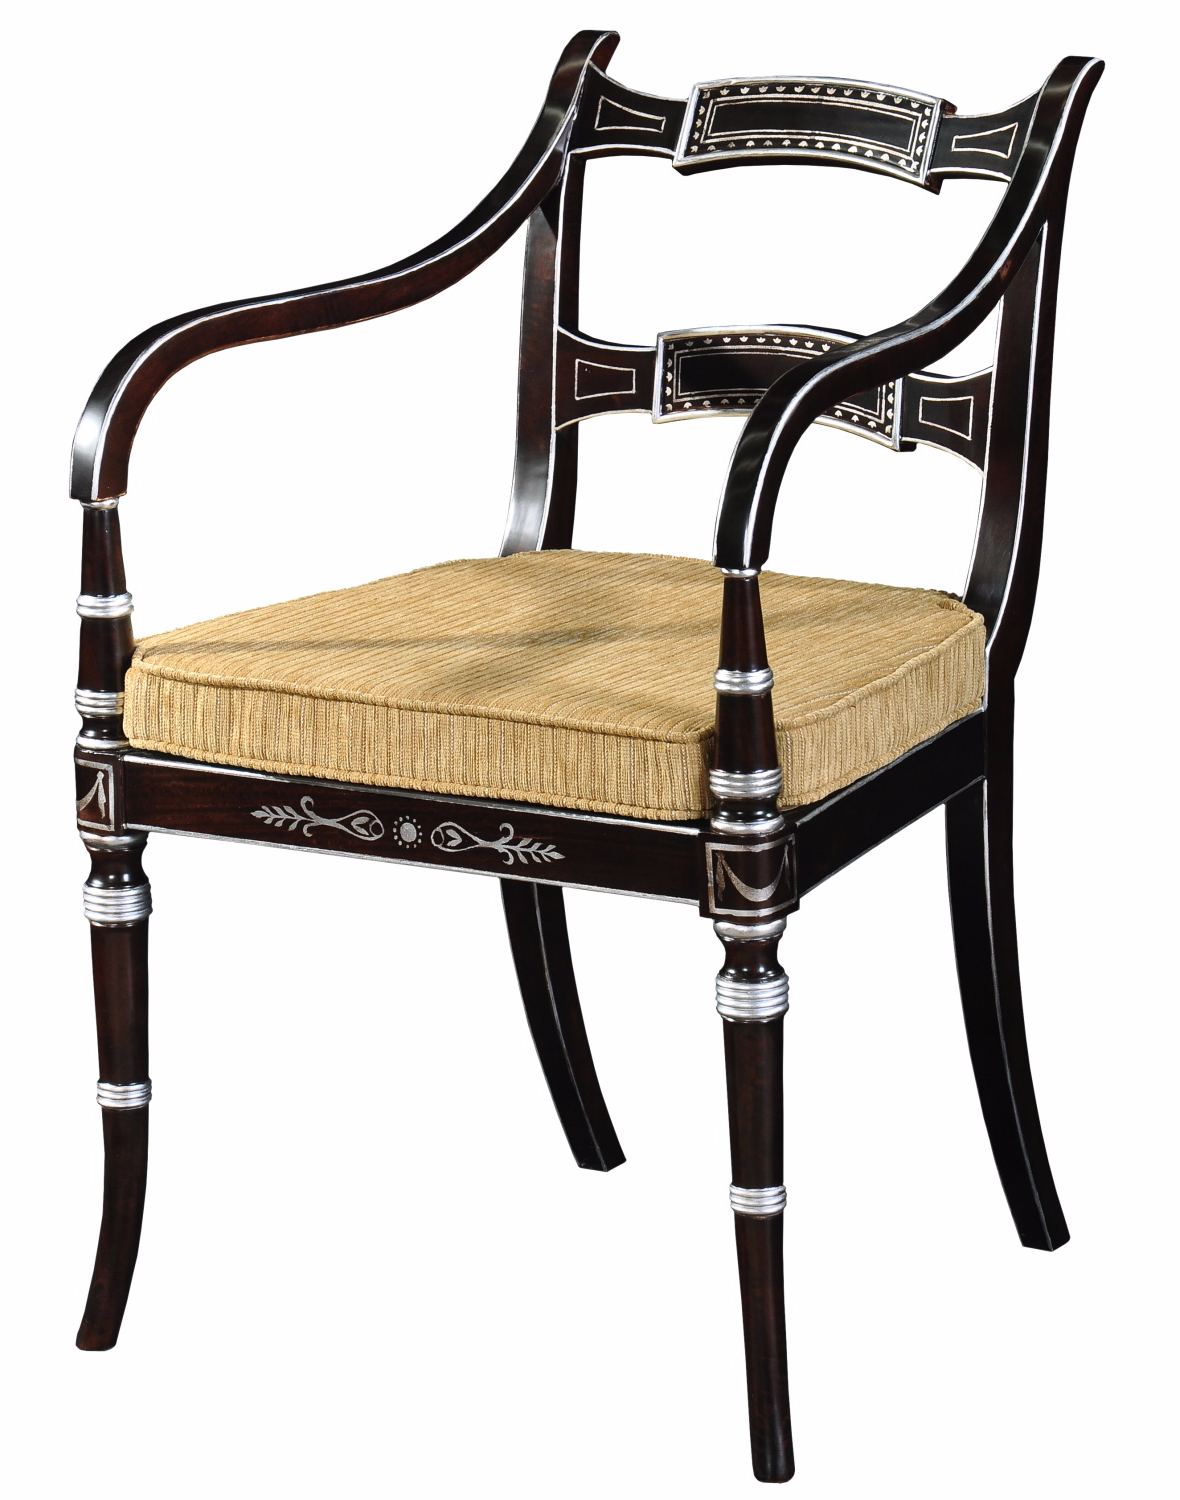 Regency style ebonised and silver gilt chair